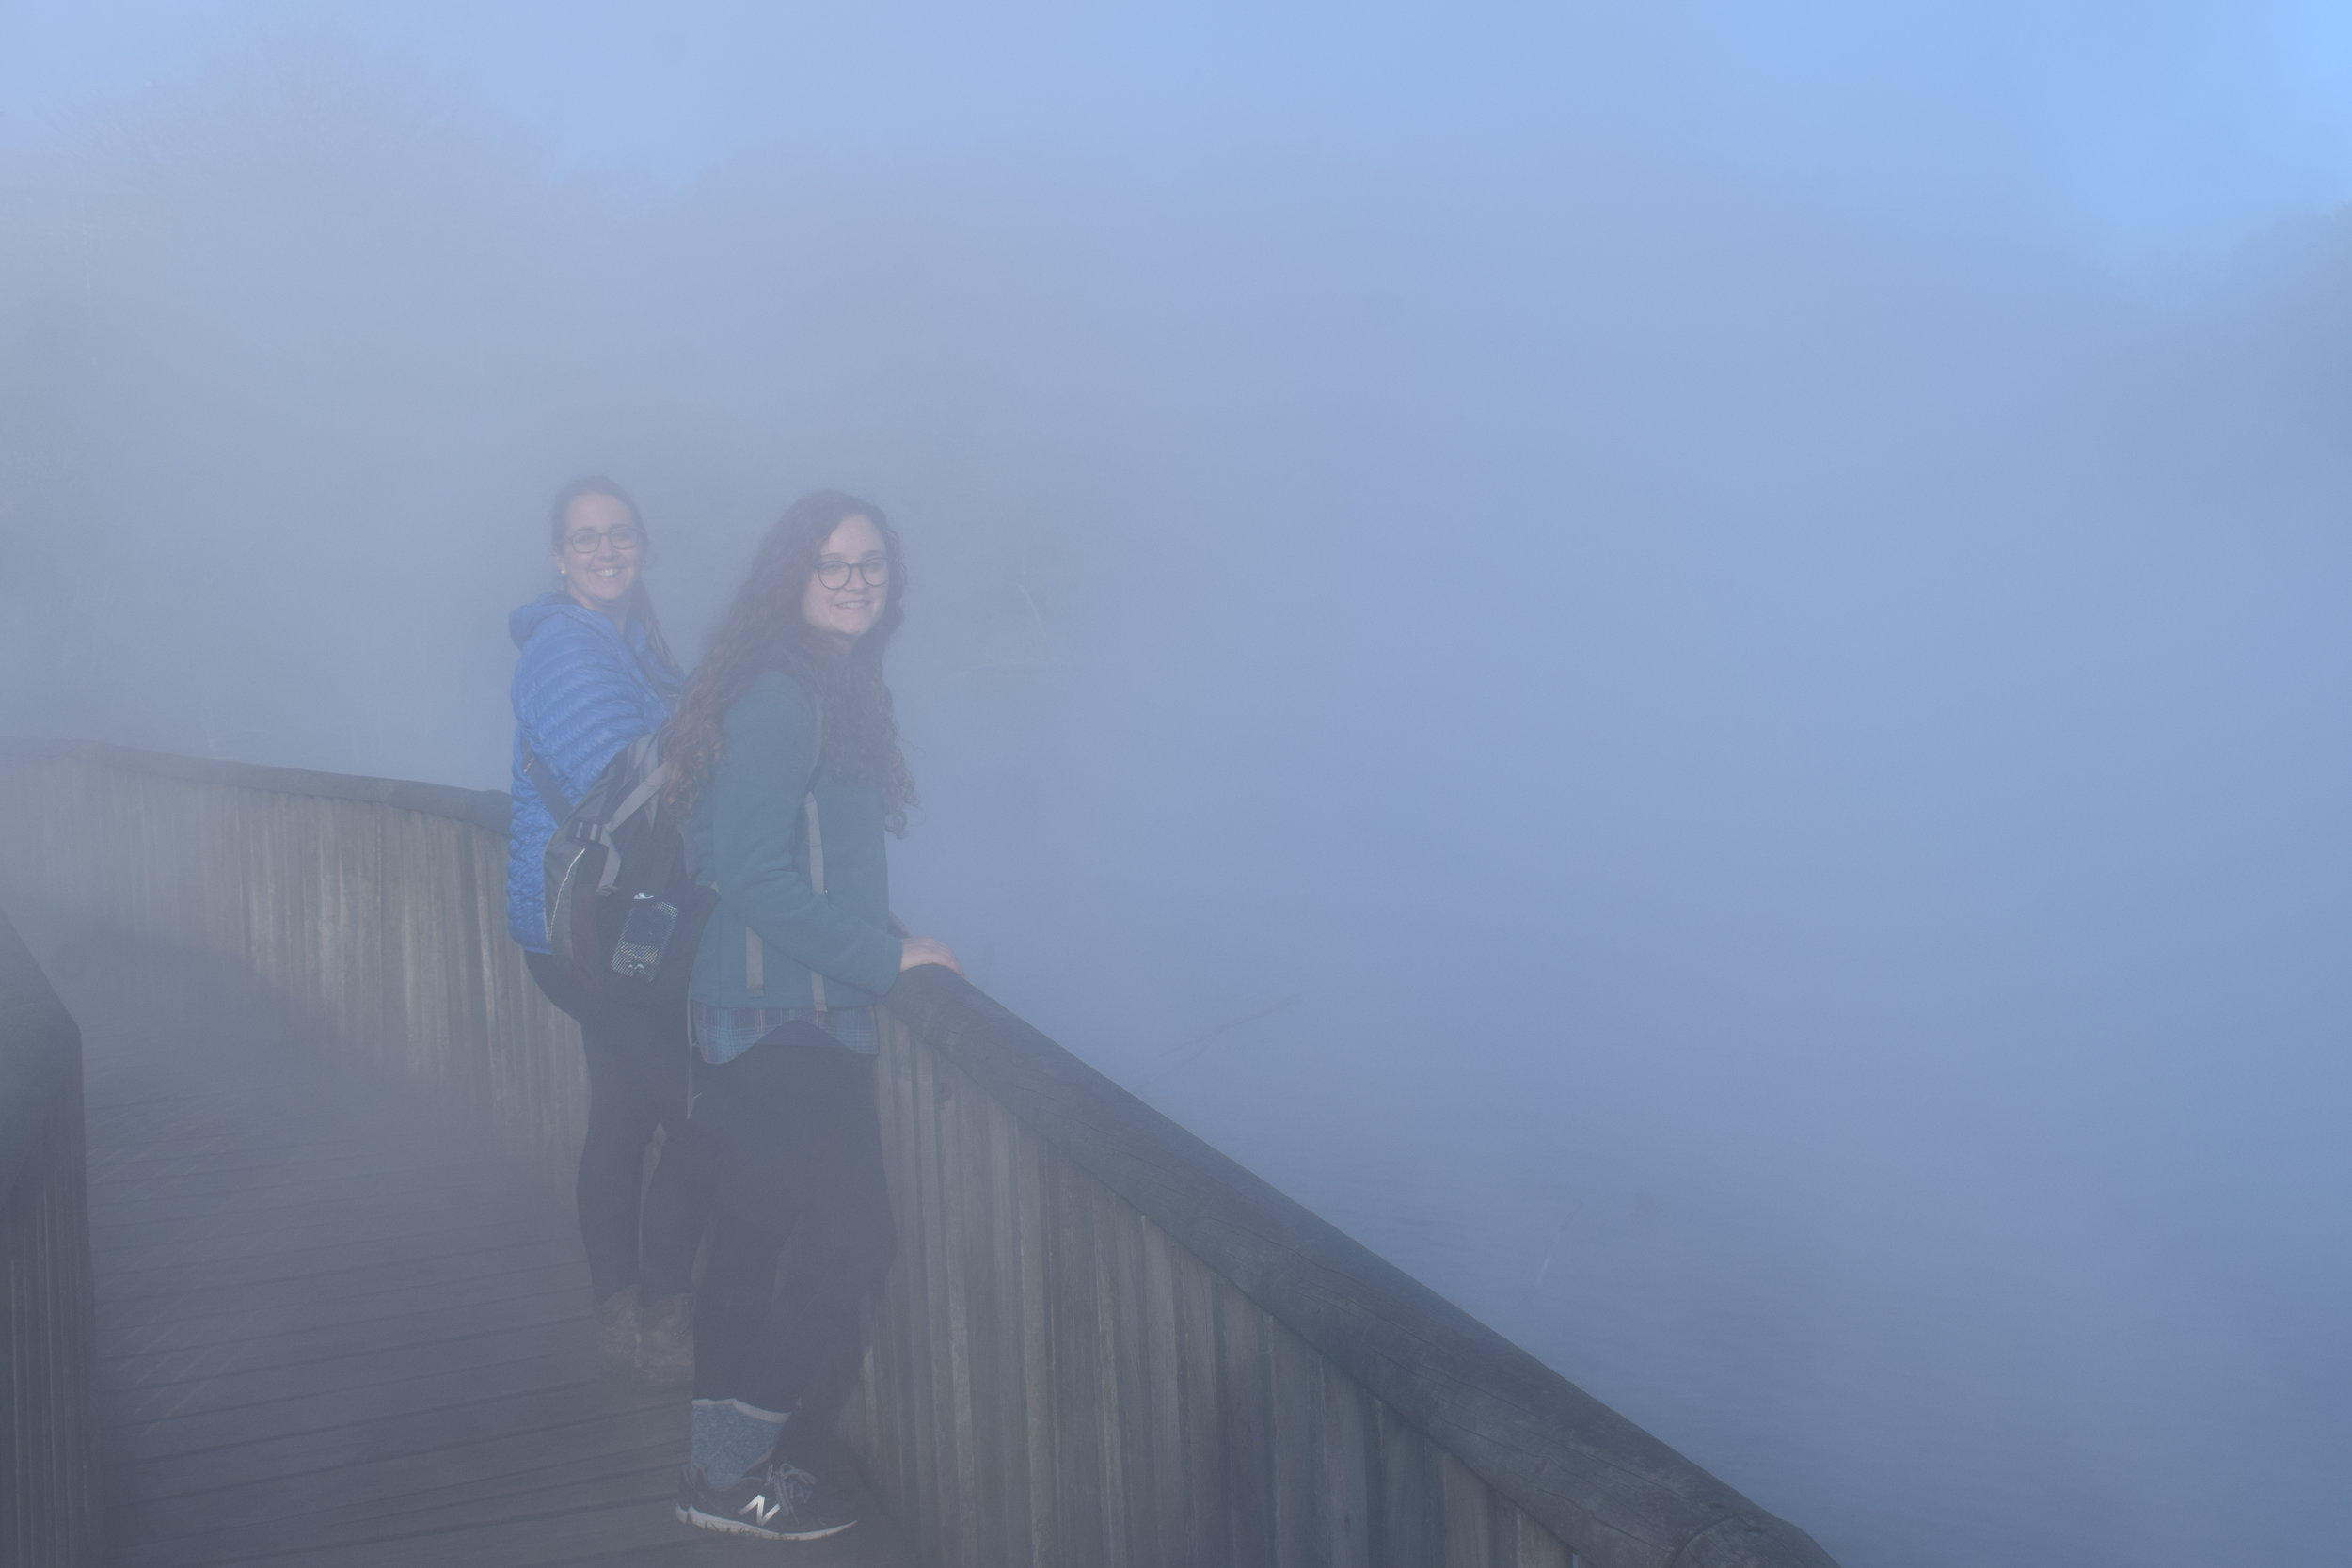 See what I mean? You can barely see CJ & I through the steam. The steam smells like stinky eggs, btw.